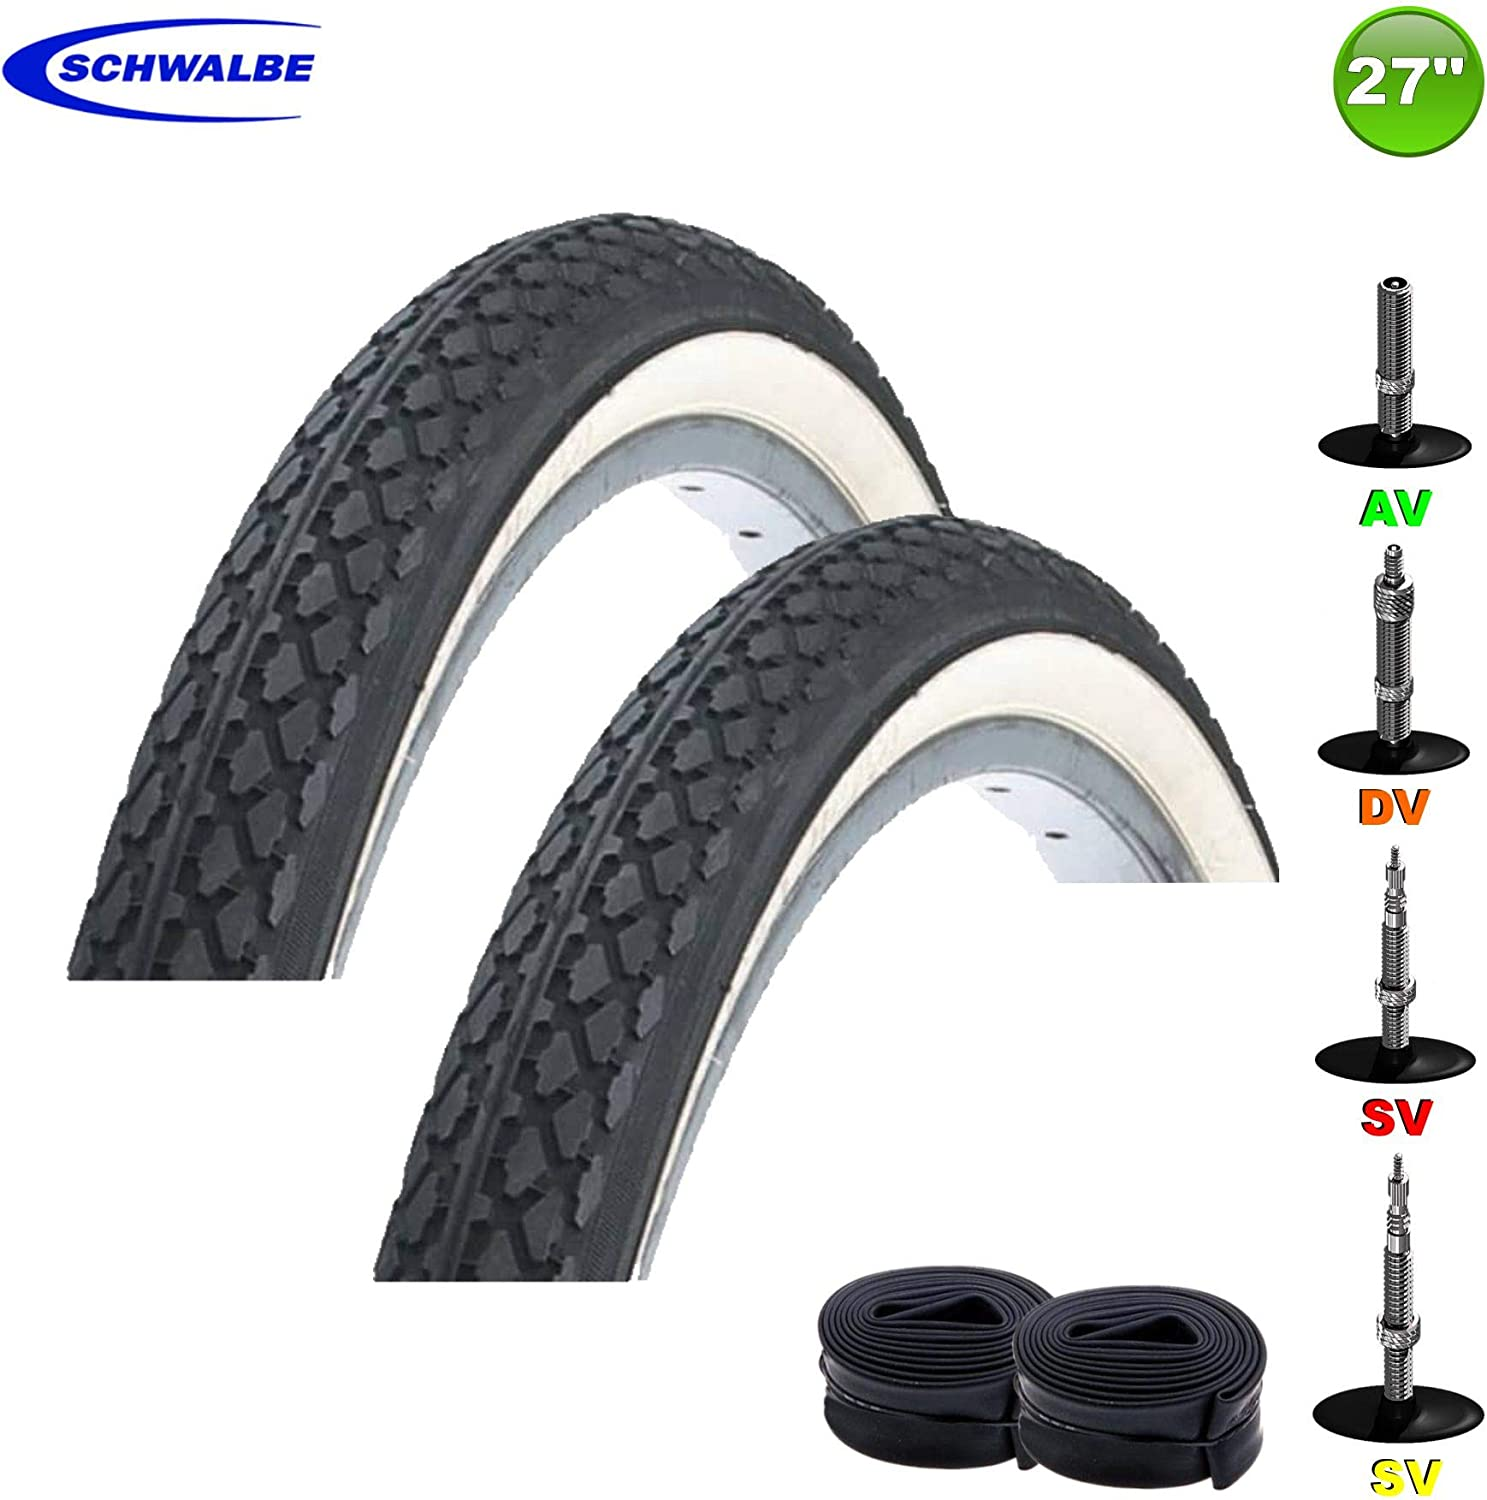 """27/"""" inch Bicycle Bike Cycle Inner Tube 27/"""" x 1-1//4/"""" New FREE Shipping USA Seller"""